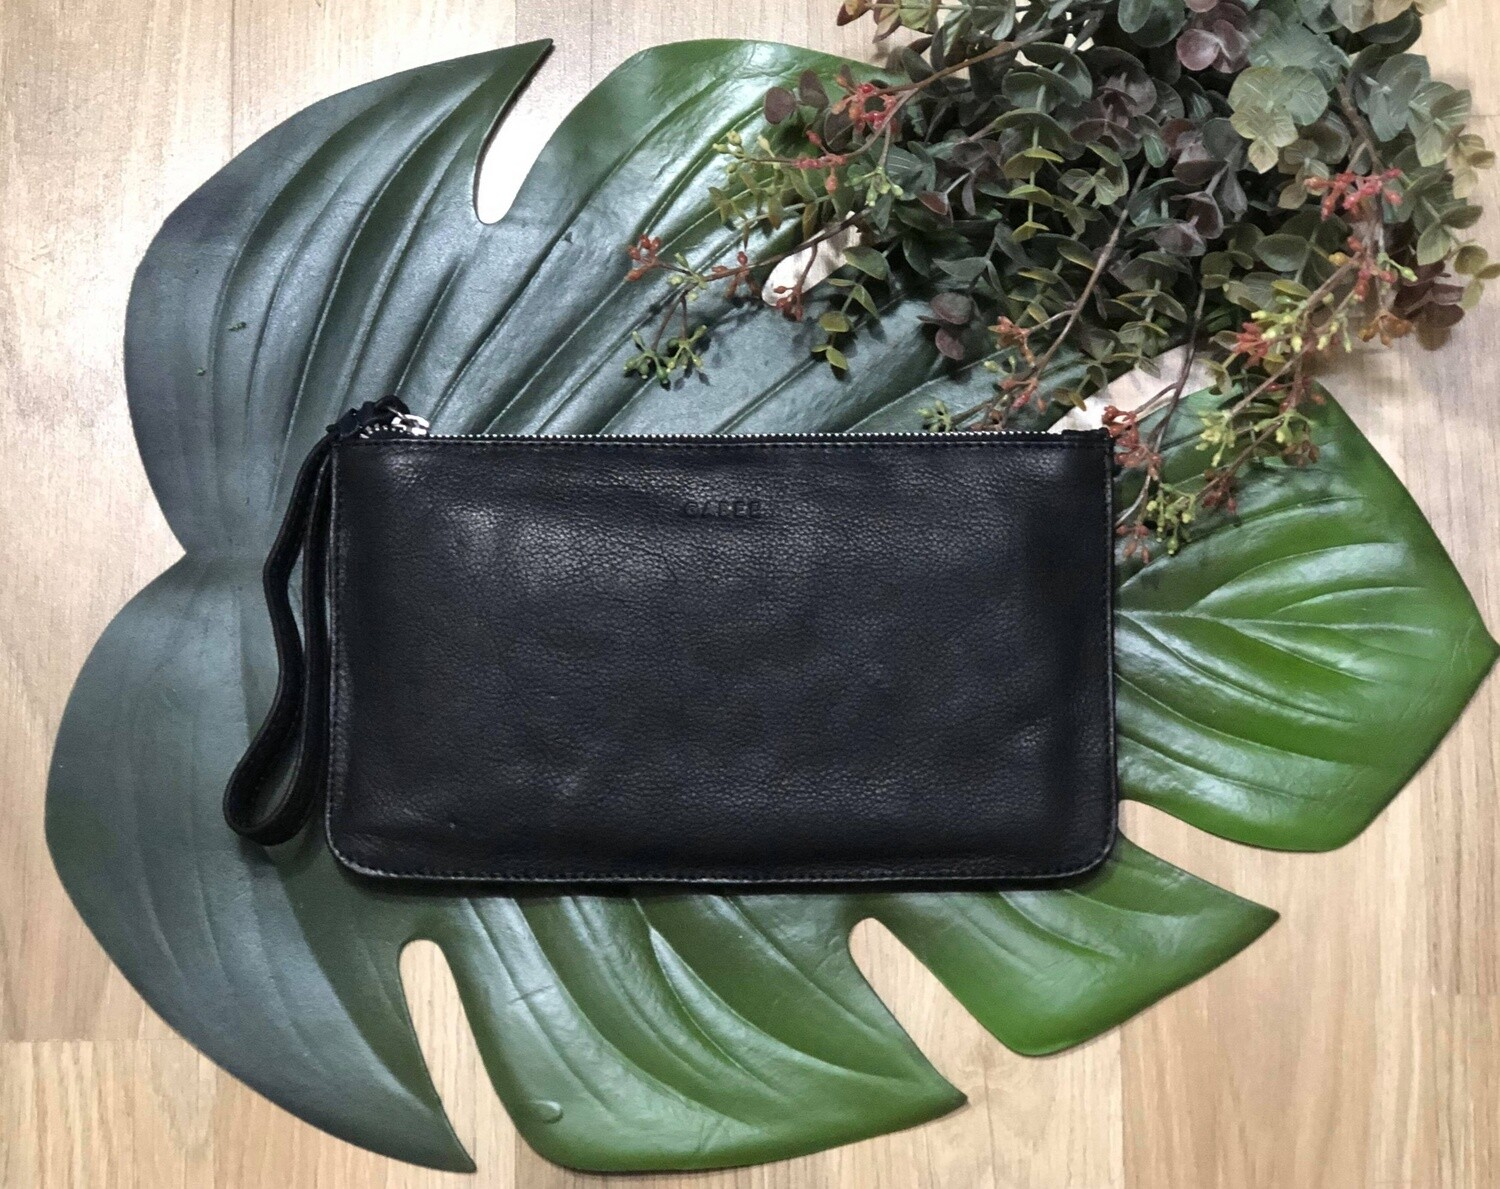 Mercer Soft Leather Pouch Black